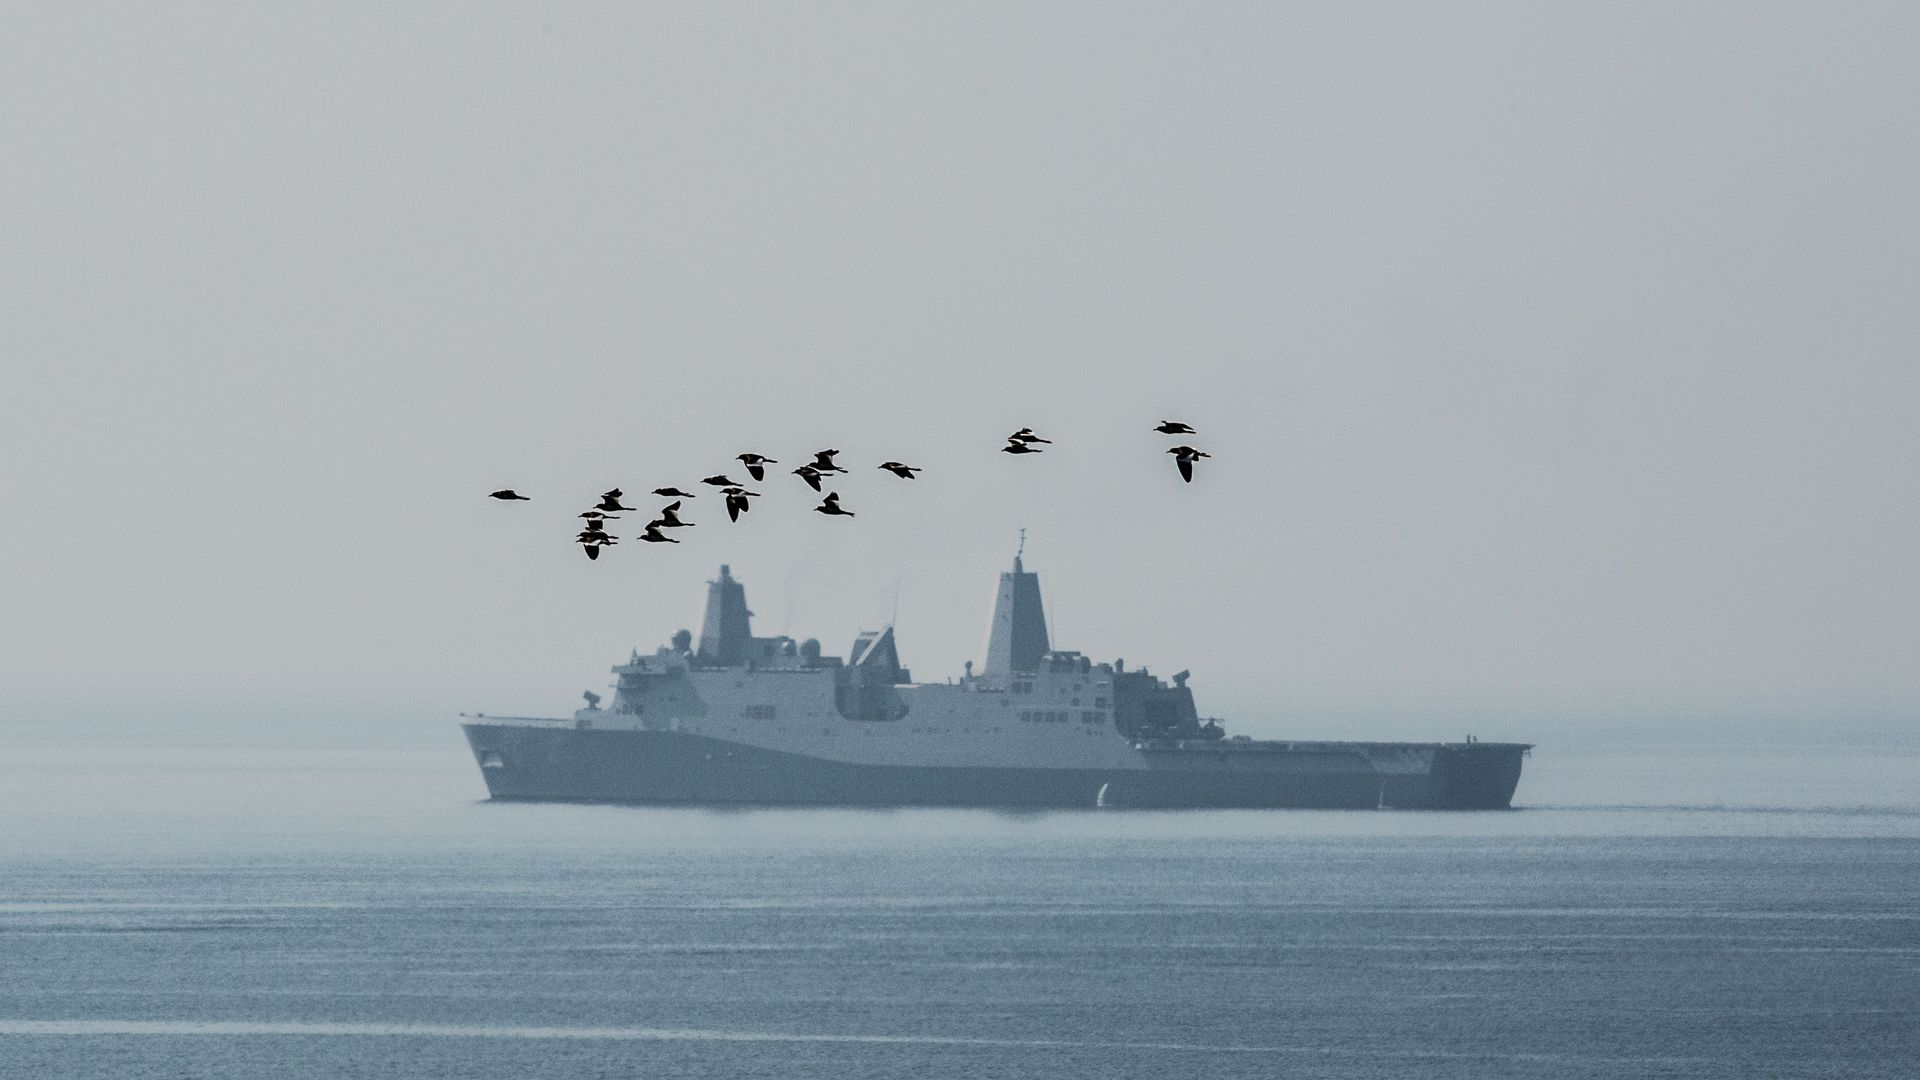 A flock of birds flies in the vicinity of the USS Green Bay, an amphibious transport dock as it manoeuvrers off the Thai coast during an amphibian landing exercise in Chonburi on February 17, 2017